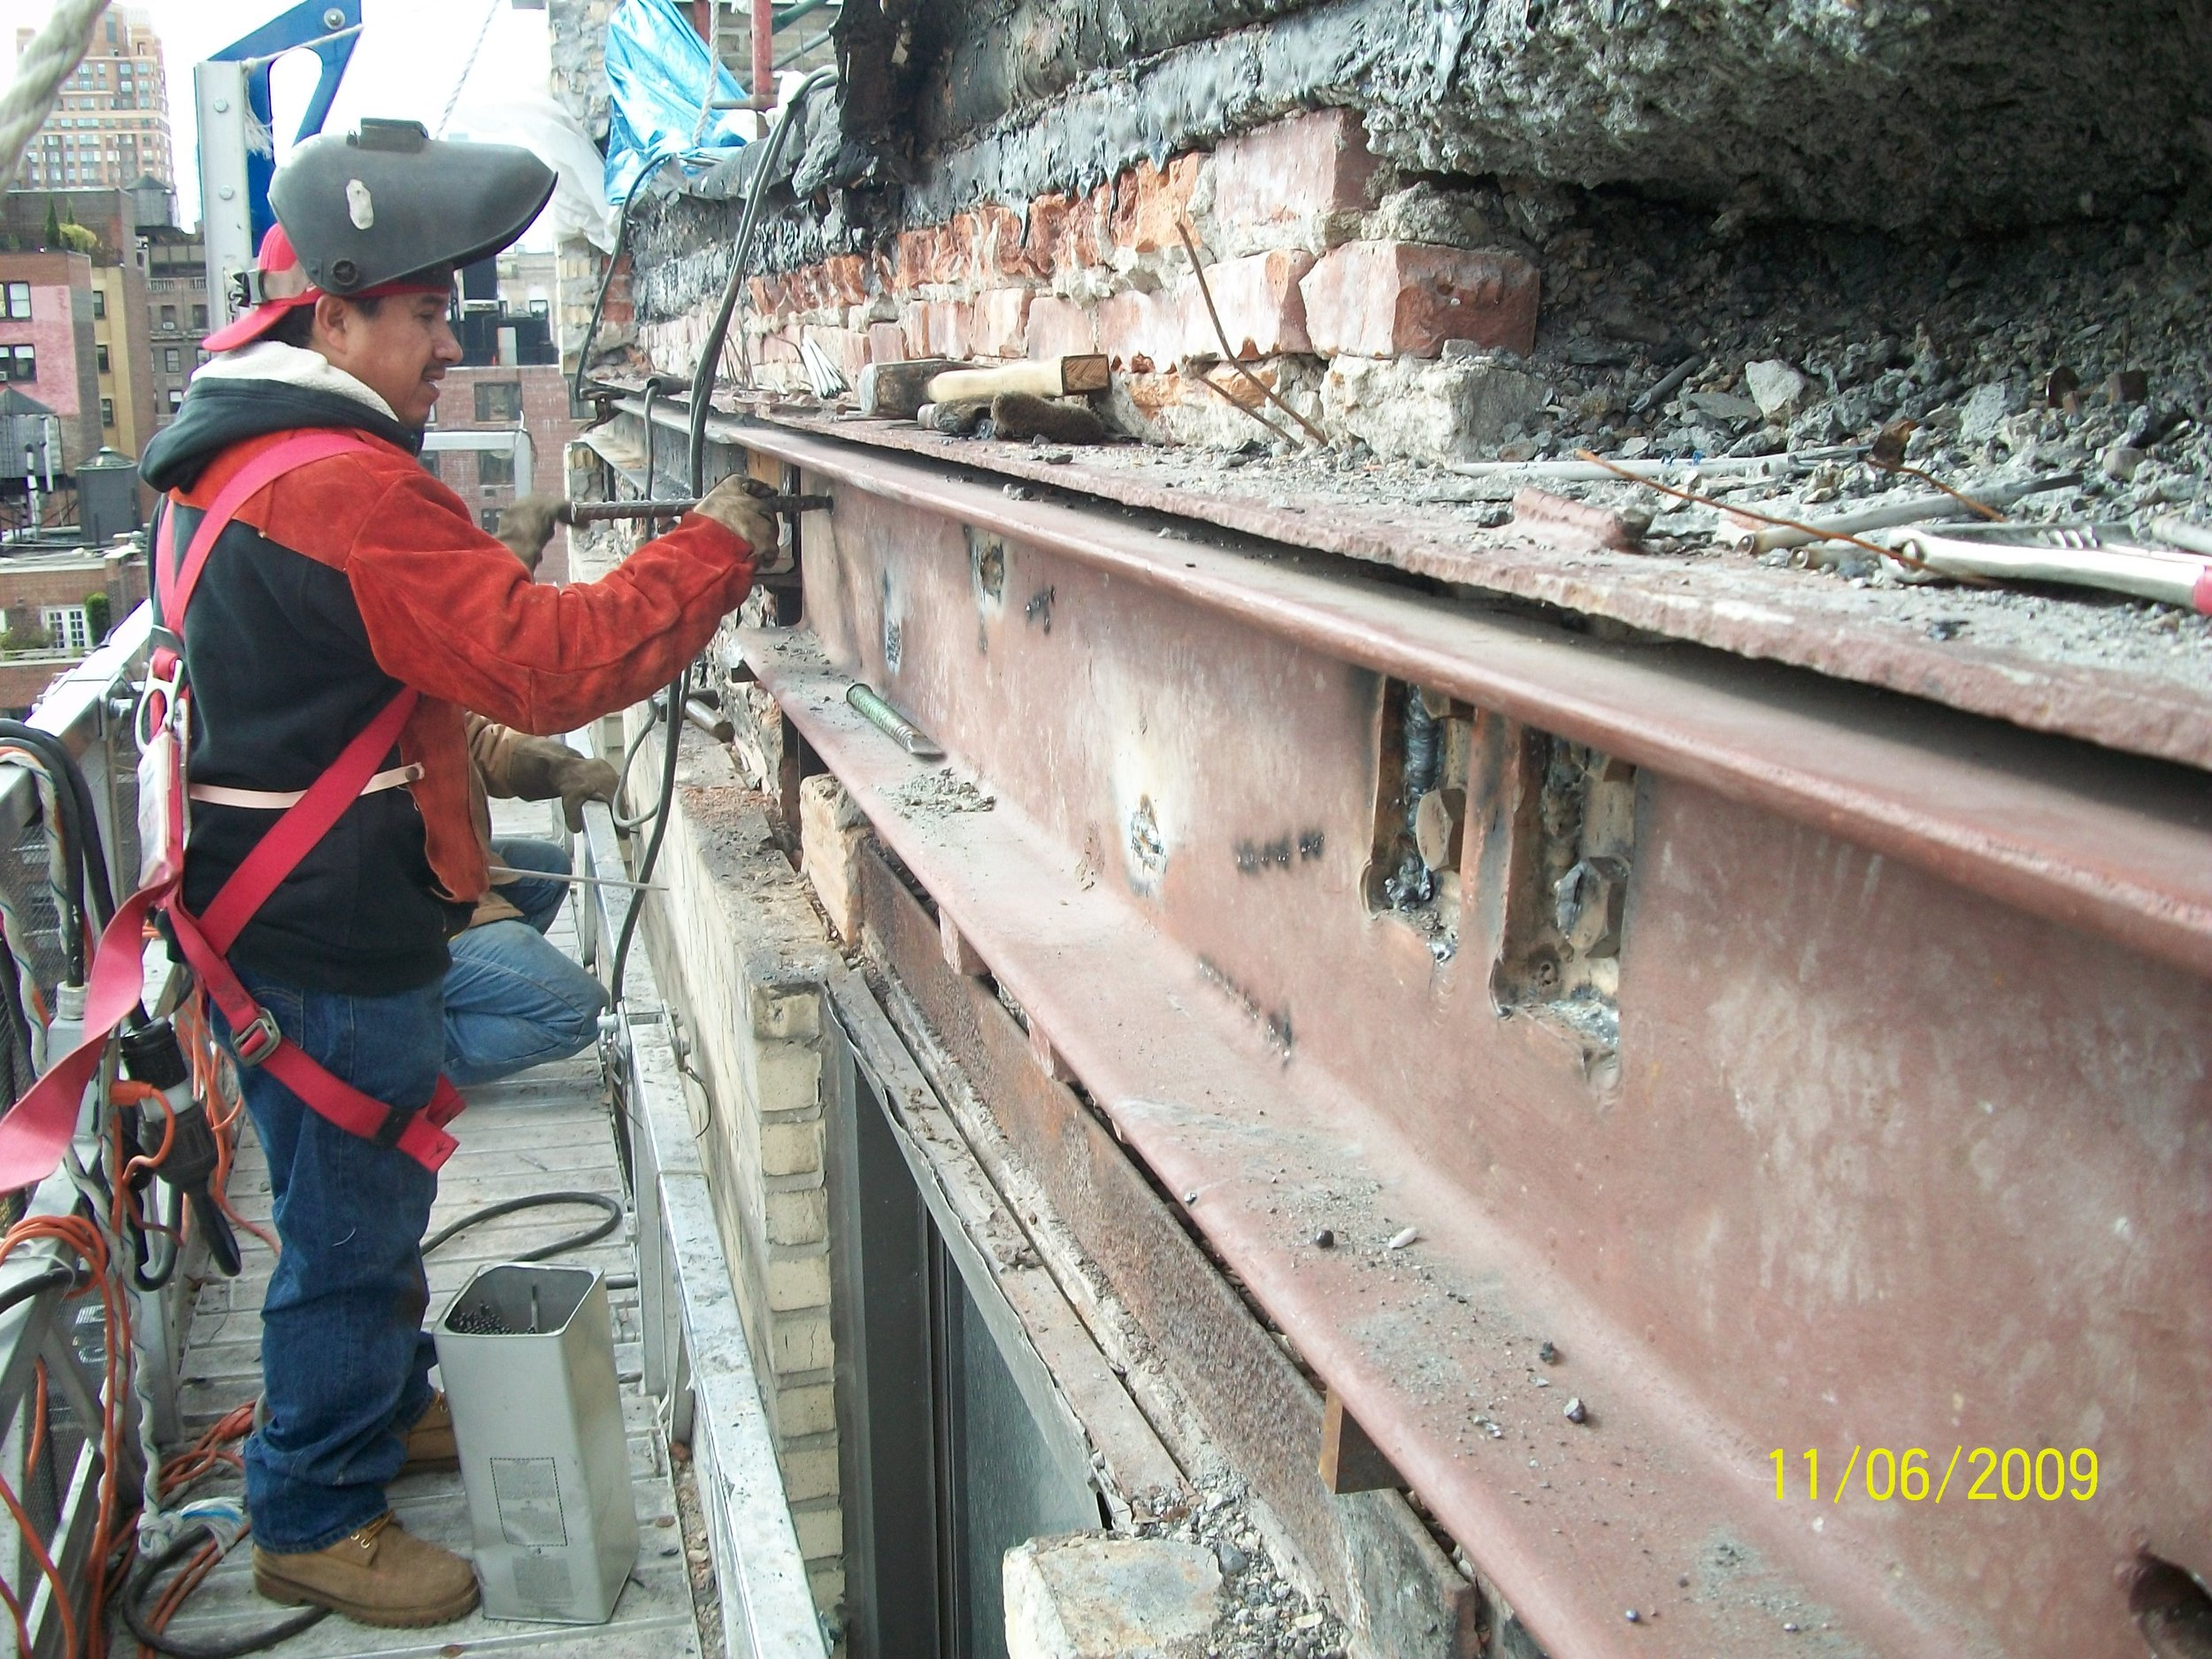 C-chanel welding installation on parapet level spandrel beam